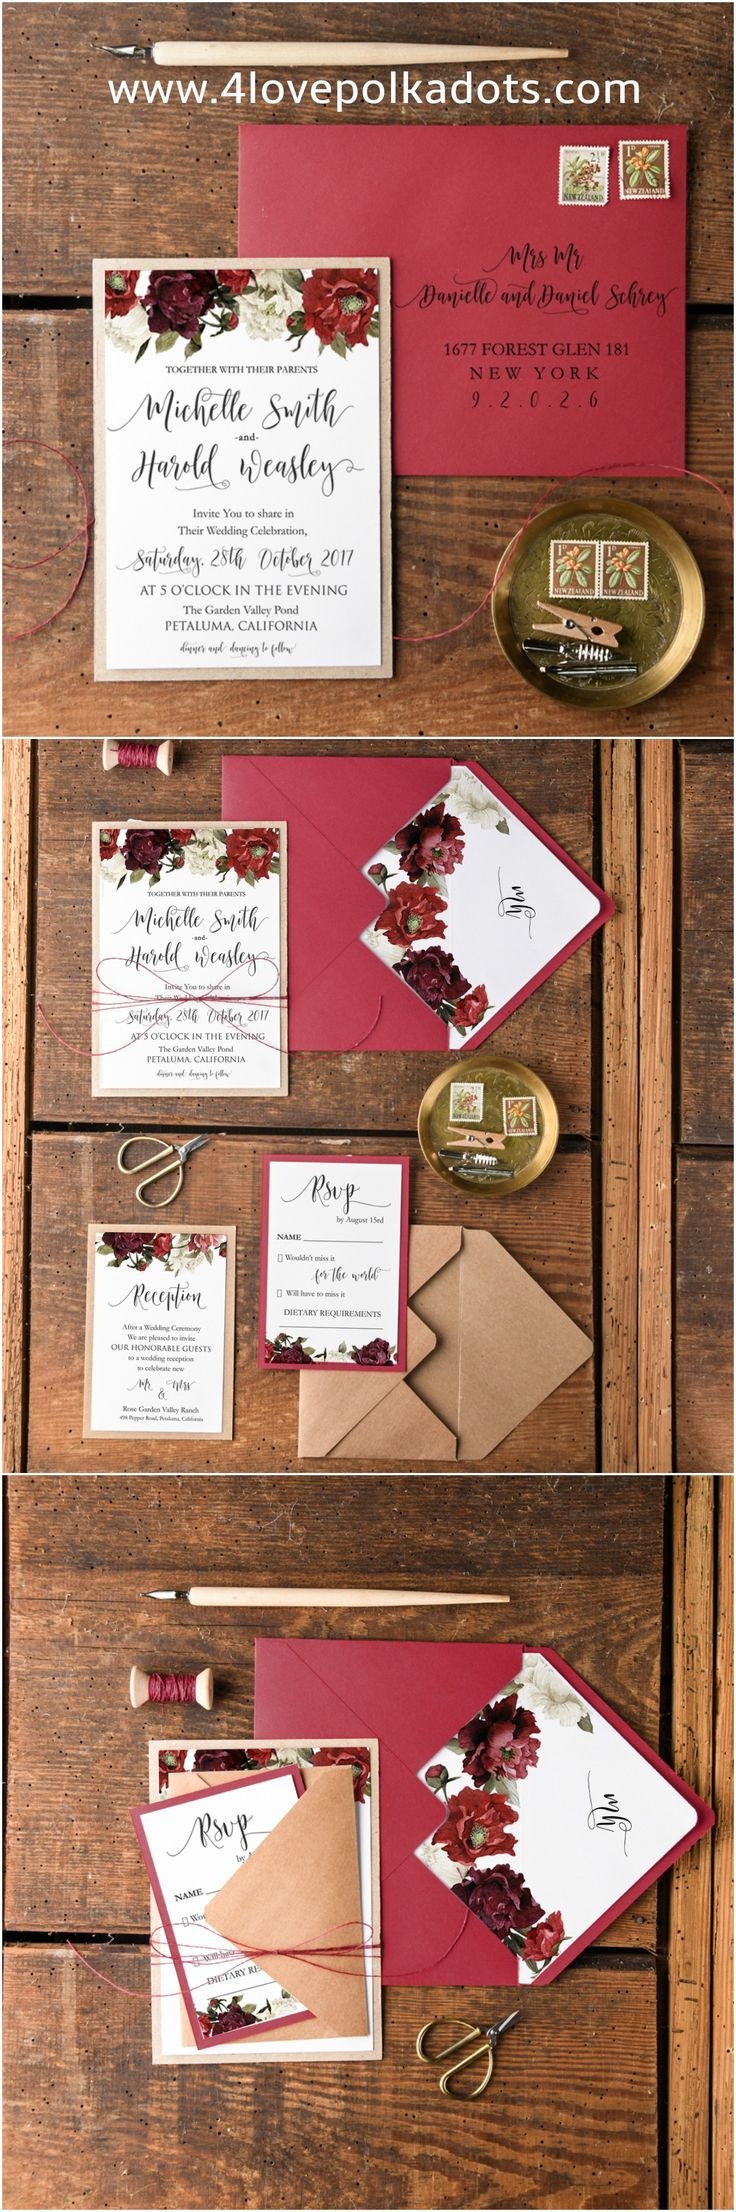 103 Best Wedding Invitations Images On Pinterest Invitations